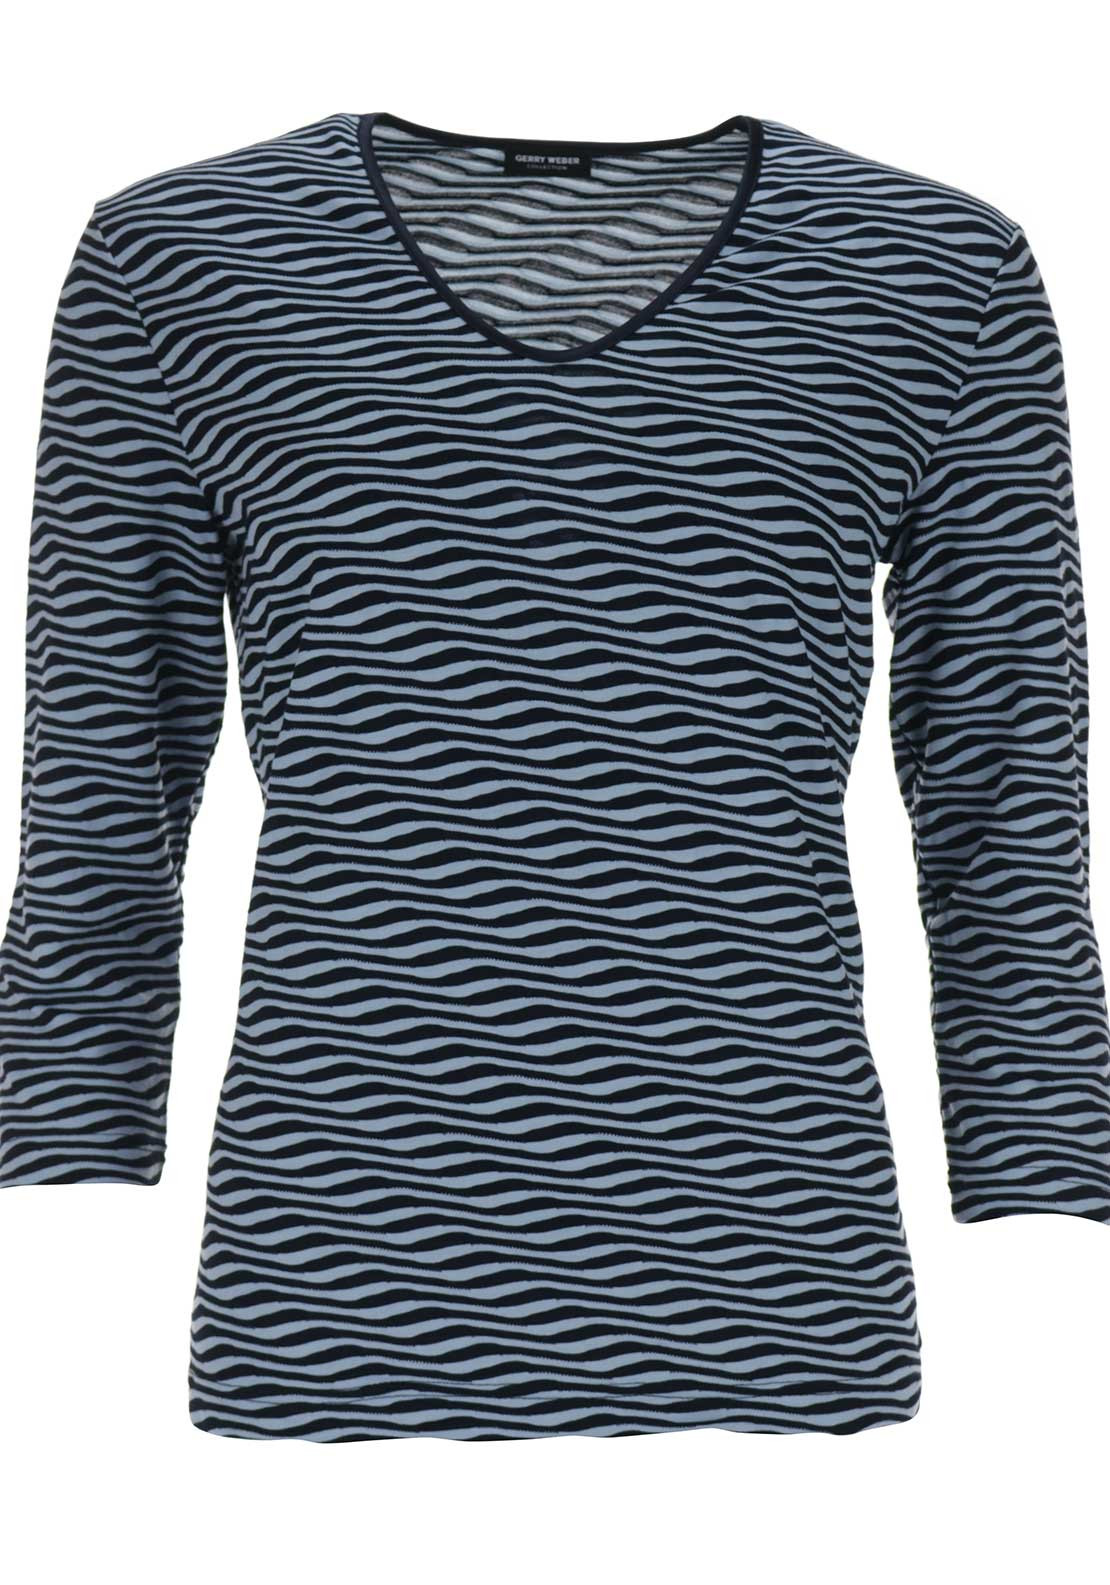 Gerry Weber V Necked Zebra printed Top, Navy & Blue